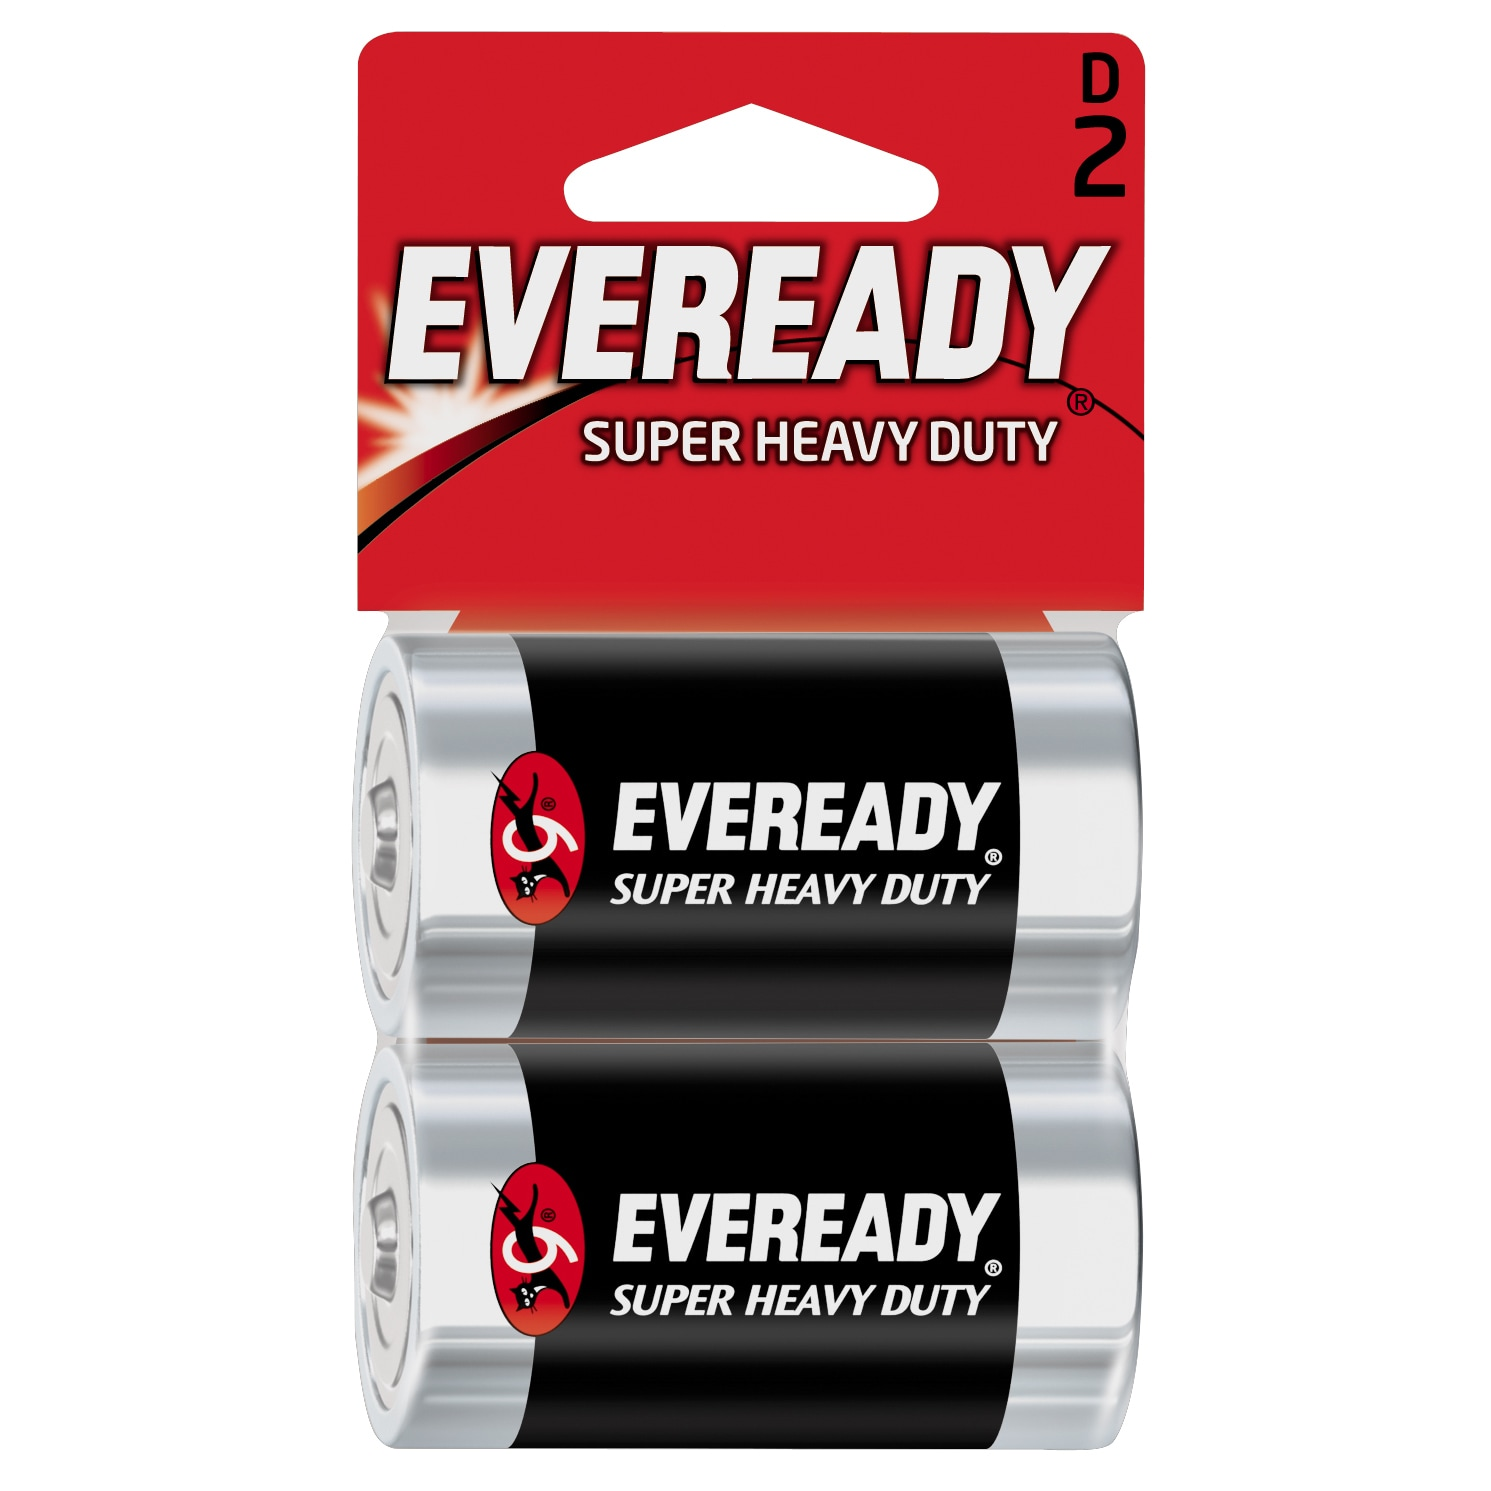 Energizer 1250sw2 D-size Heavy Duty Batteries (Pack of 2)...